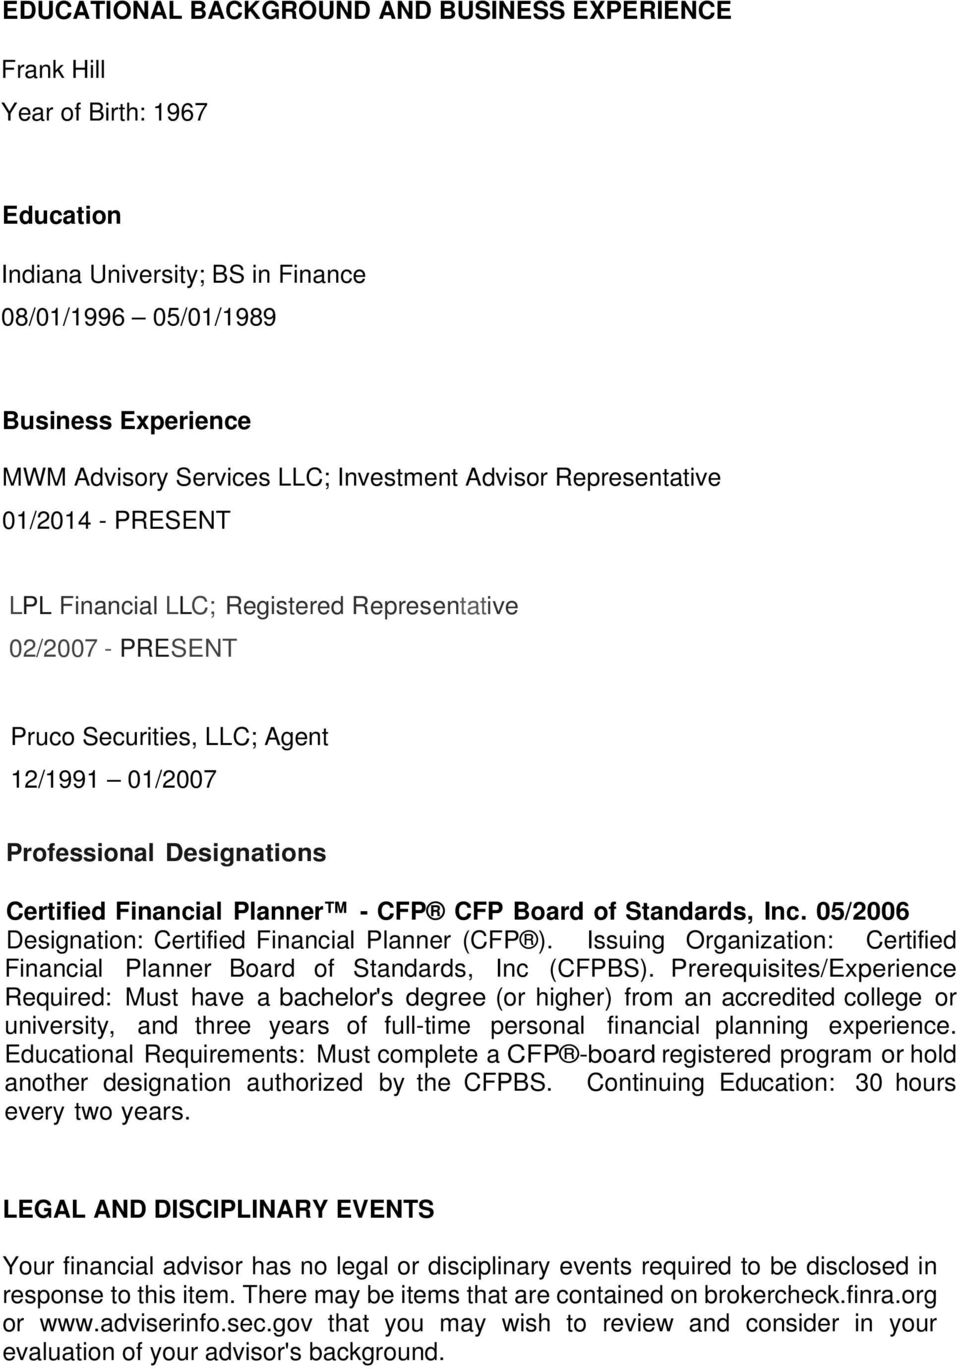 Financial Planner - CFP CFP Board of Standards, Inc. 05/2006 Designation: Certified Financial Planner (CFP ). Issuing Organization: Certified Financial Planner Board of Standards, Inc (CFPBS).